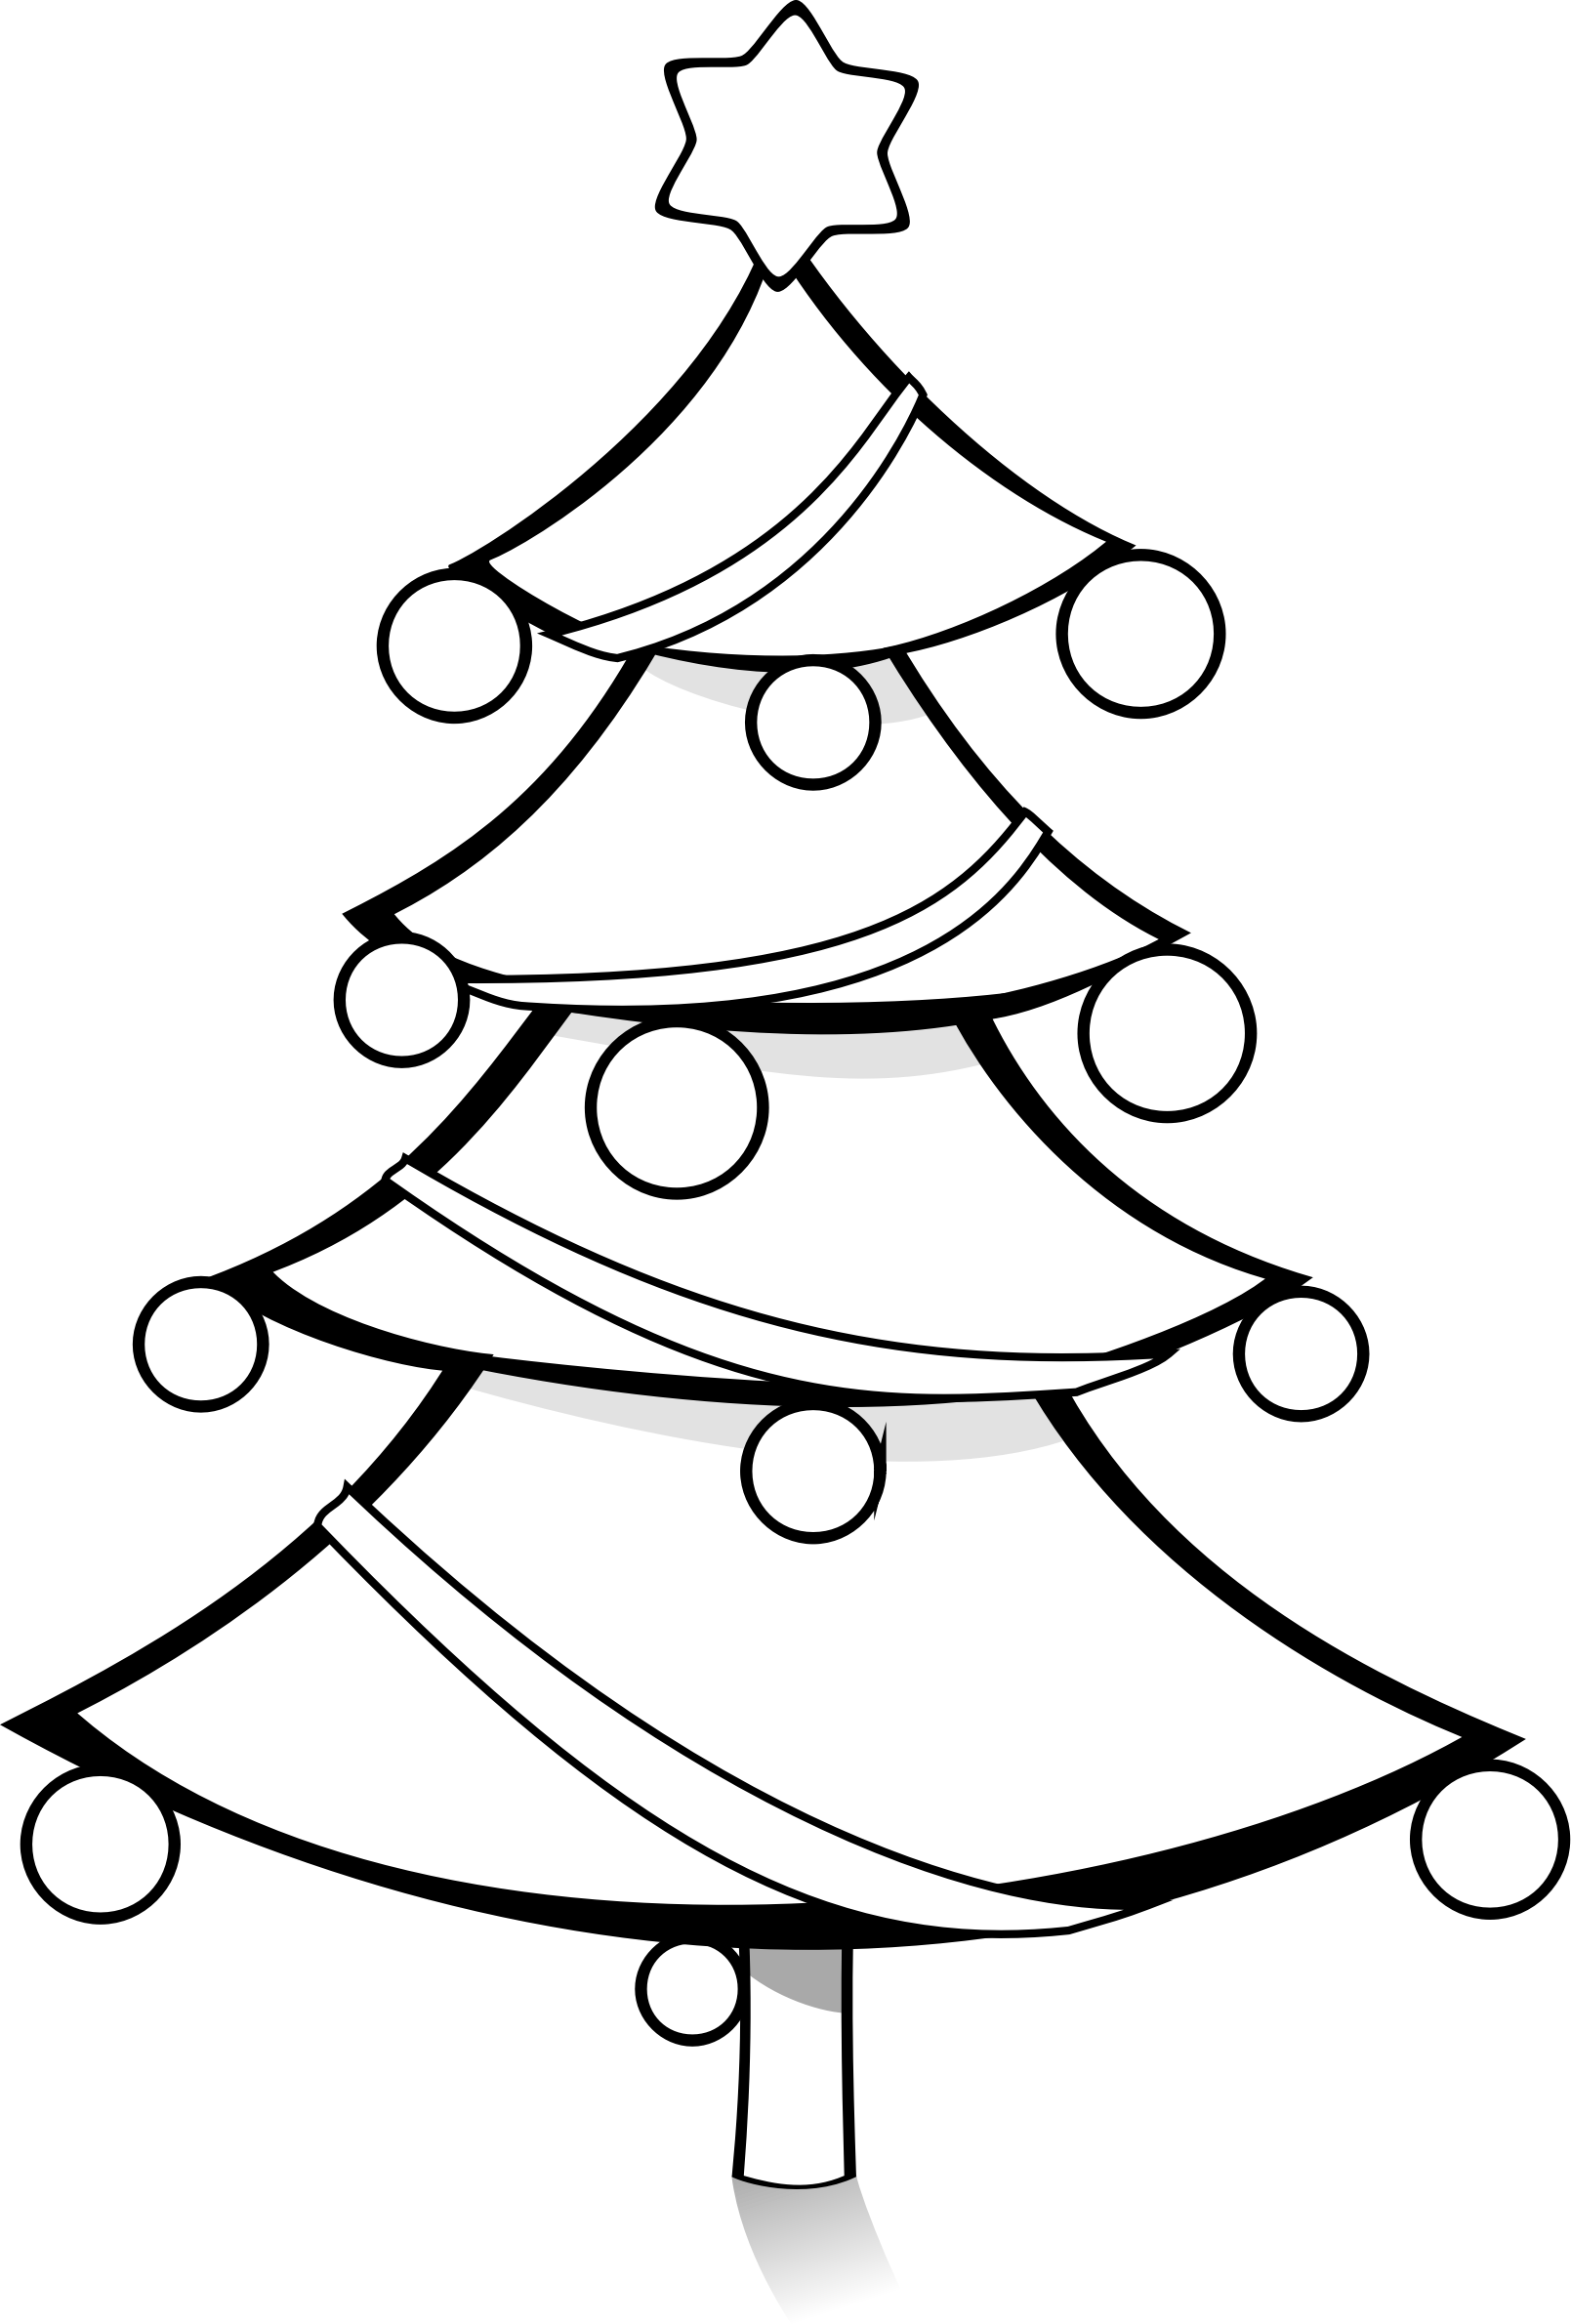 Clipart christmas images black and white clip free stock Christmas Tree Clipart Black And White - 60 cliparts clip free stock